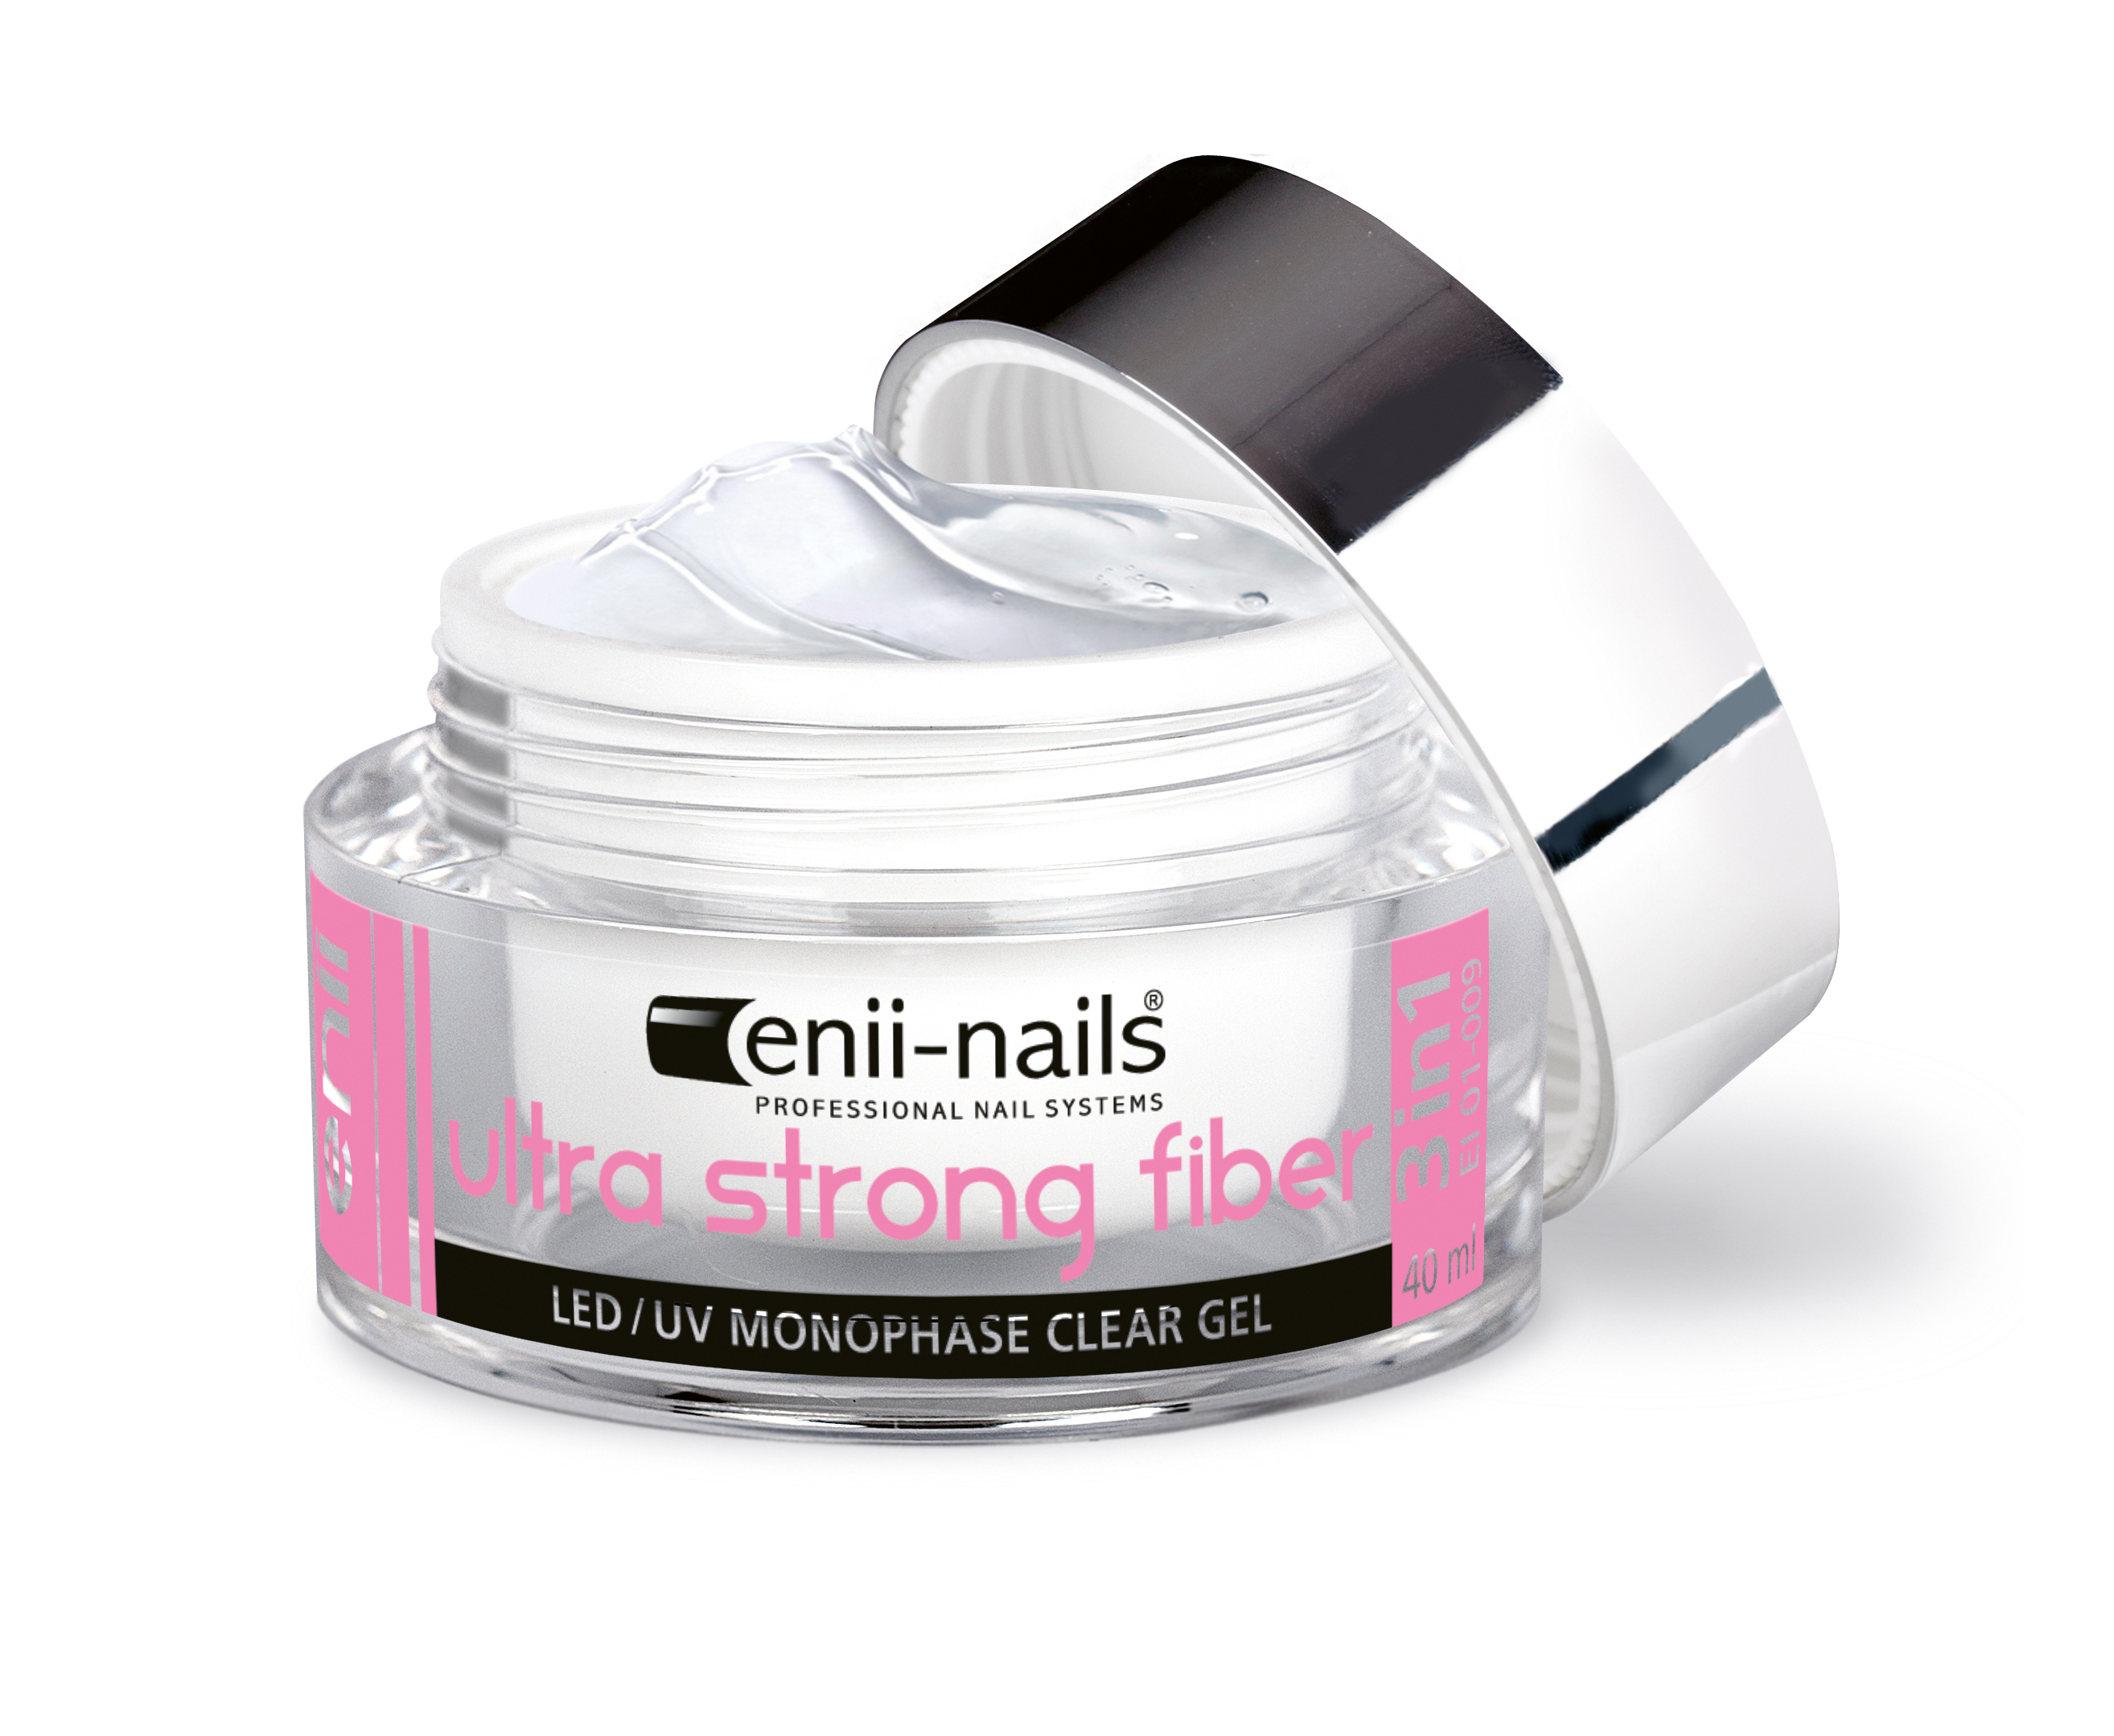 ENII-NAILS ENII ULTRA STRONG FIBER gel 40 ml